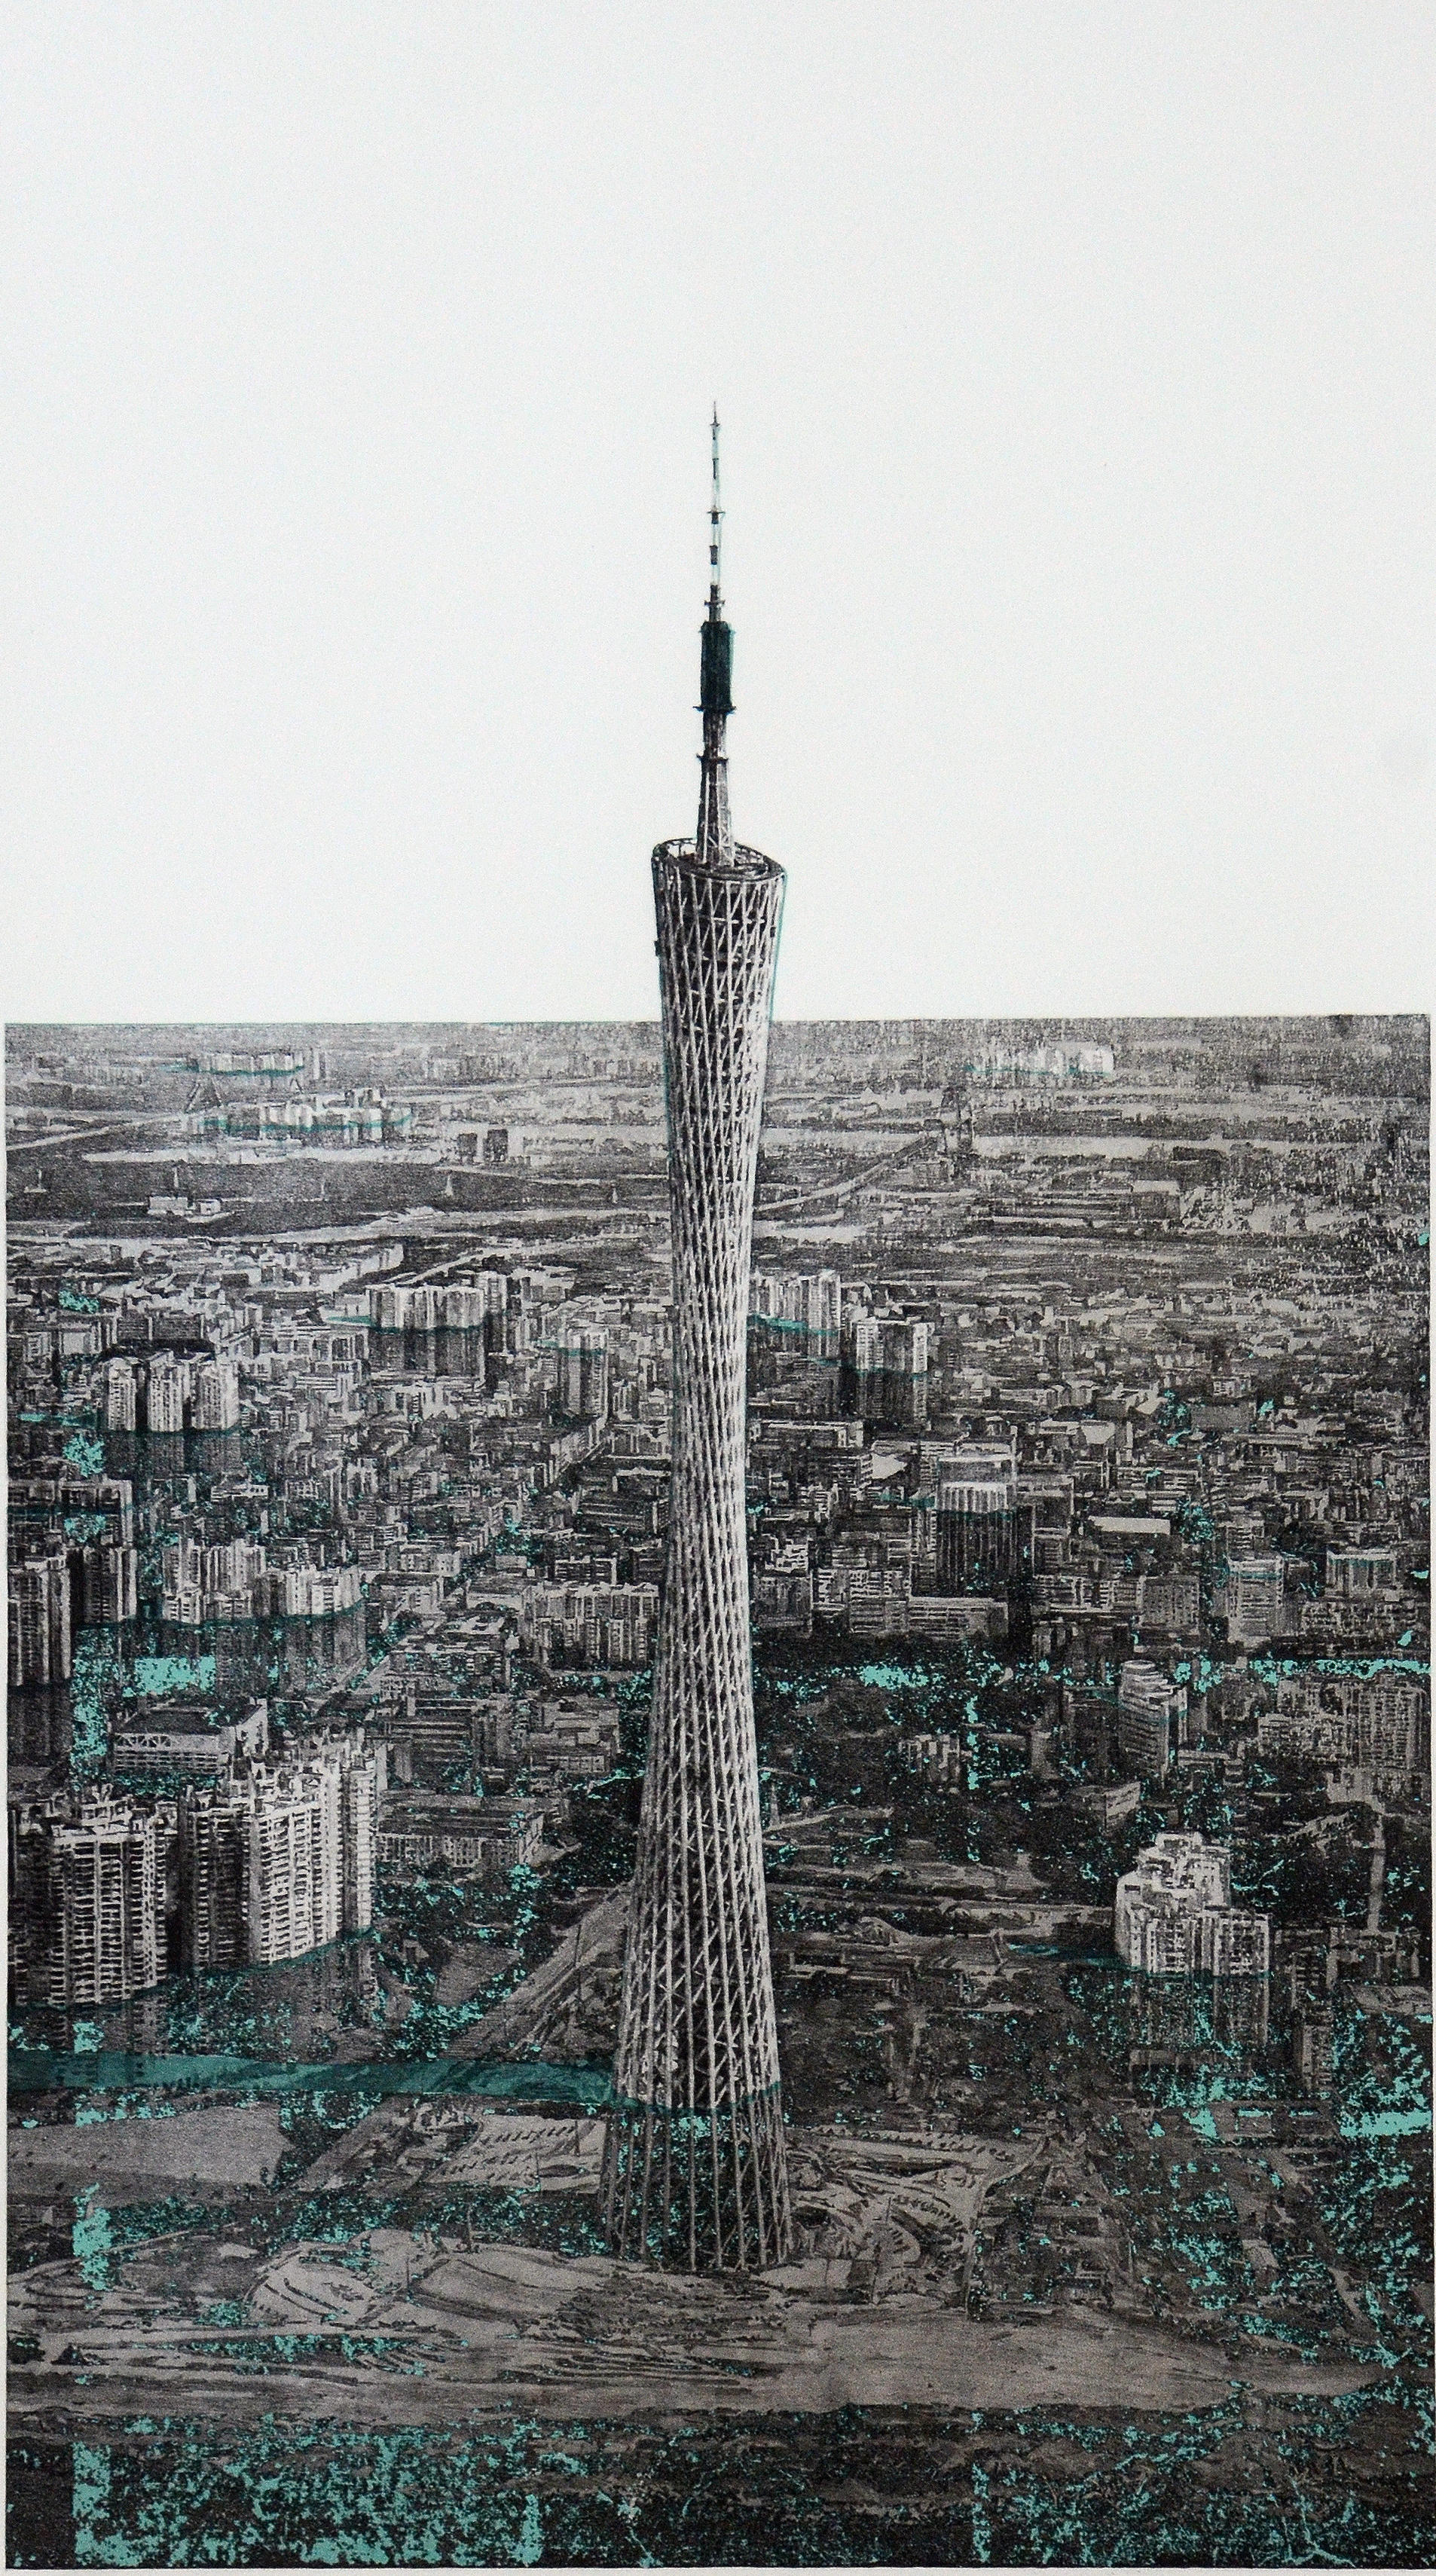 Foresight - Canton Tower / China (広州タワー)